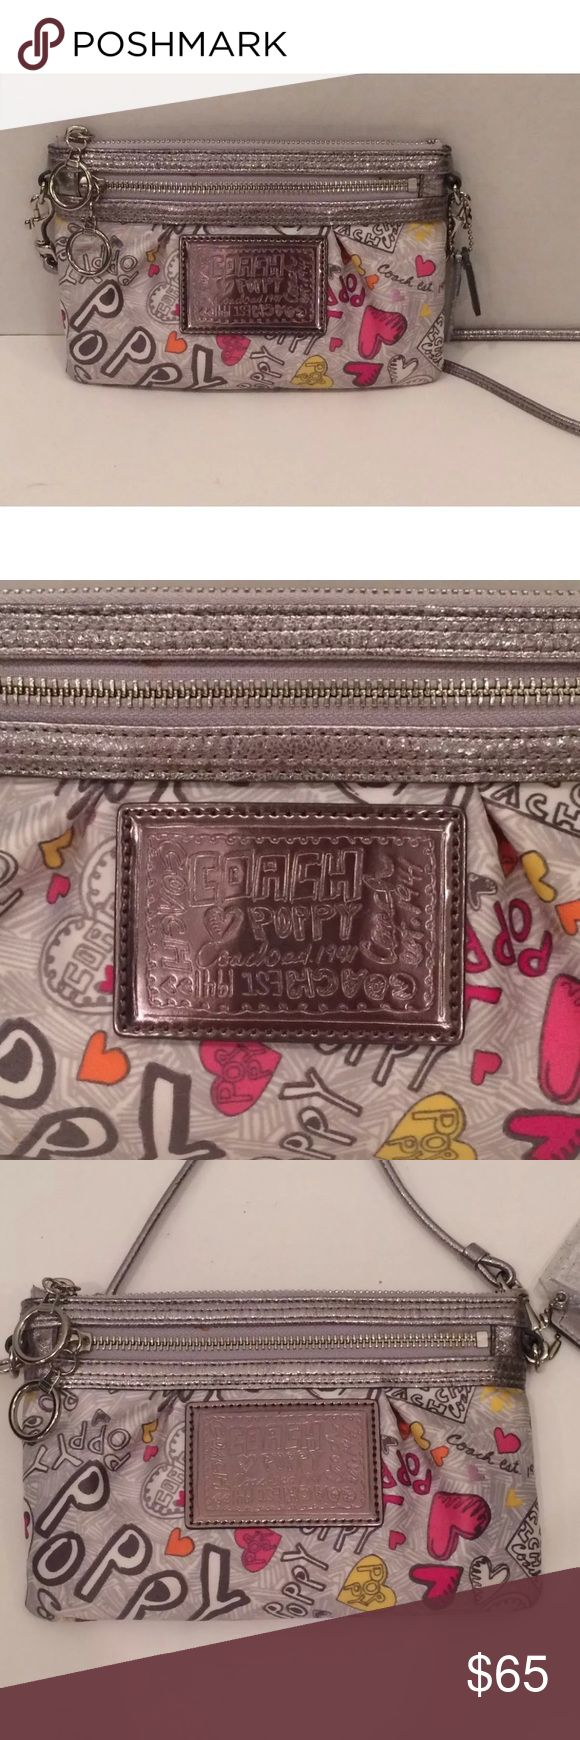 Coach poppy heart graffiti small crossbody purse You are looking at a Coach silver poppy heart graffiti crossbody purse. It's new without the tags and in excellent condition. Coach Bags Crossbody Bags